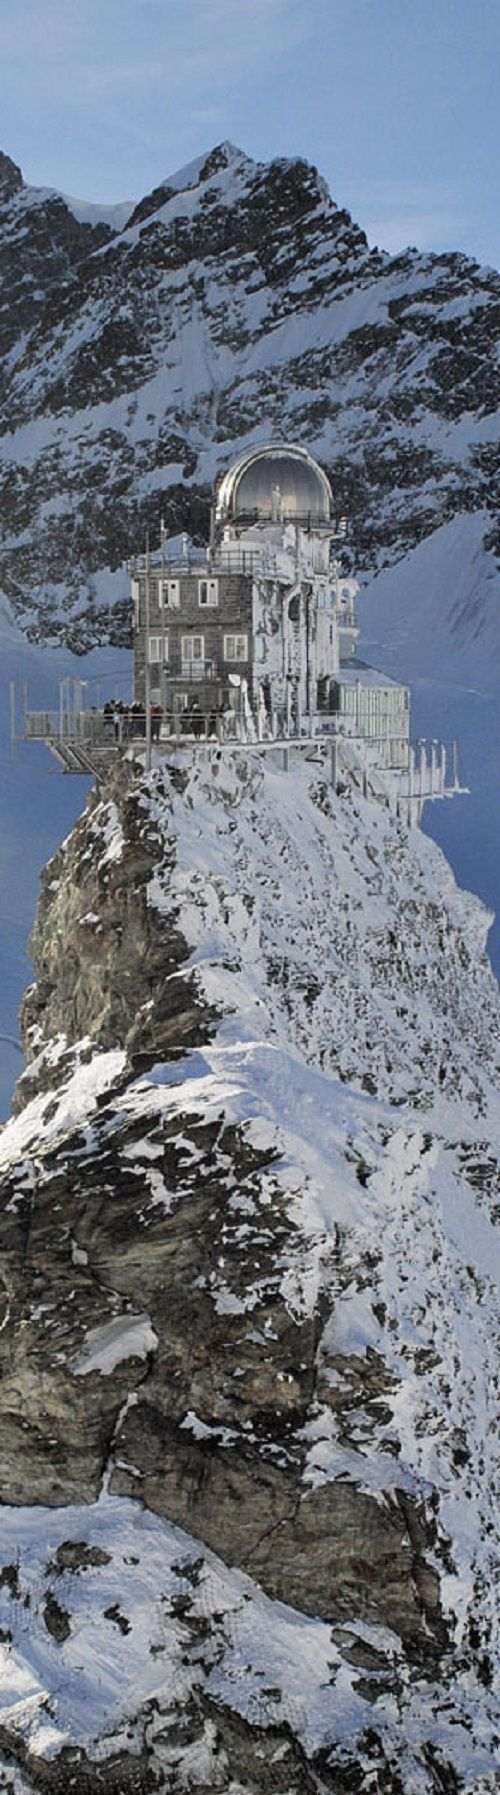 The Sphinx Observatory, one of the highest astronomical observatories in the world, provides an additional viewing platform at a height of 3,571 meters or 11,716 feet. Seen from Jungfraujoch Top of Europe building. Switzerland. Photo Jungfrau.ch, posted to Pinterest by SouthStreetHQ